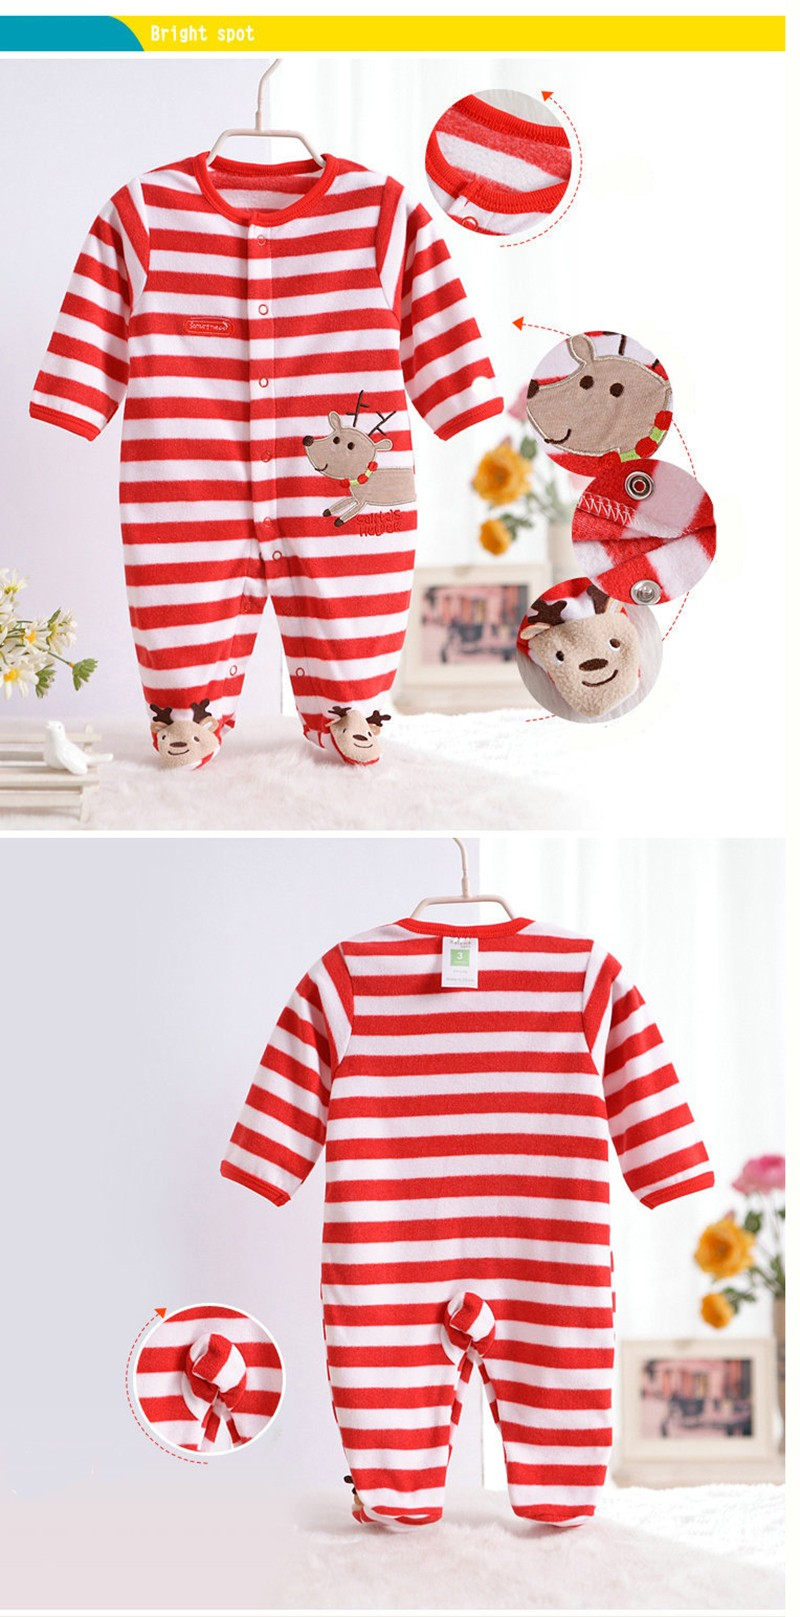 New Arrival Baby Footies Boys&Girls Jumpsuits Spring Autumn Clothes Warm Cotton Baby Footies Fleece Baby Clothing Free Shipping (4)